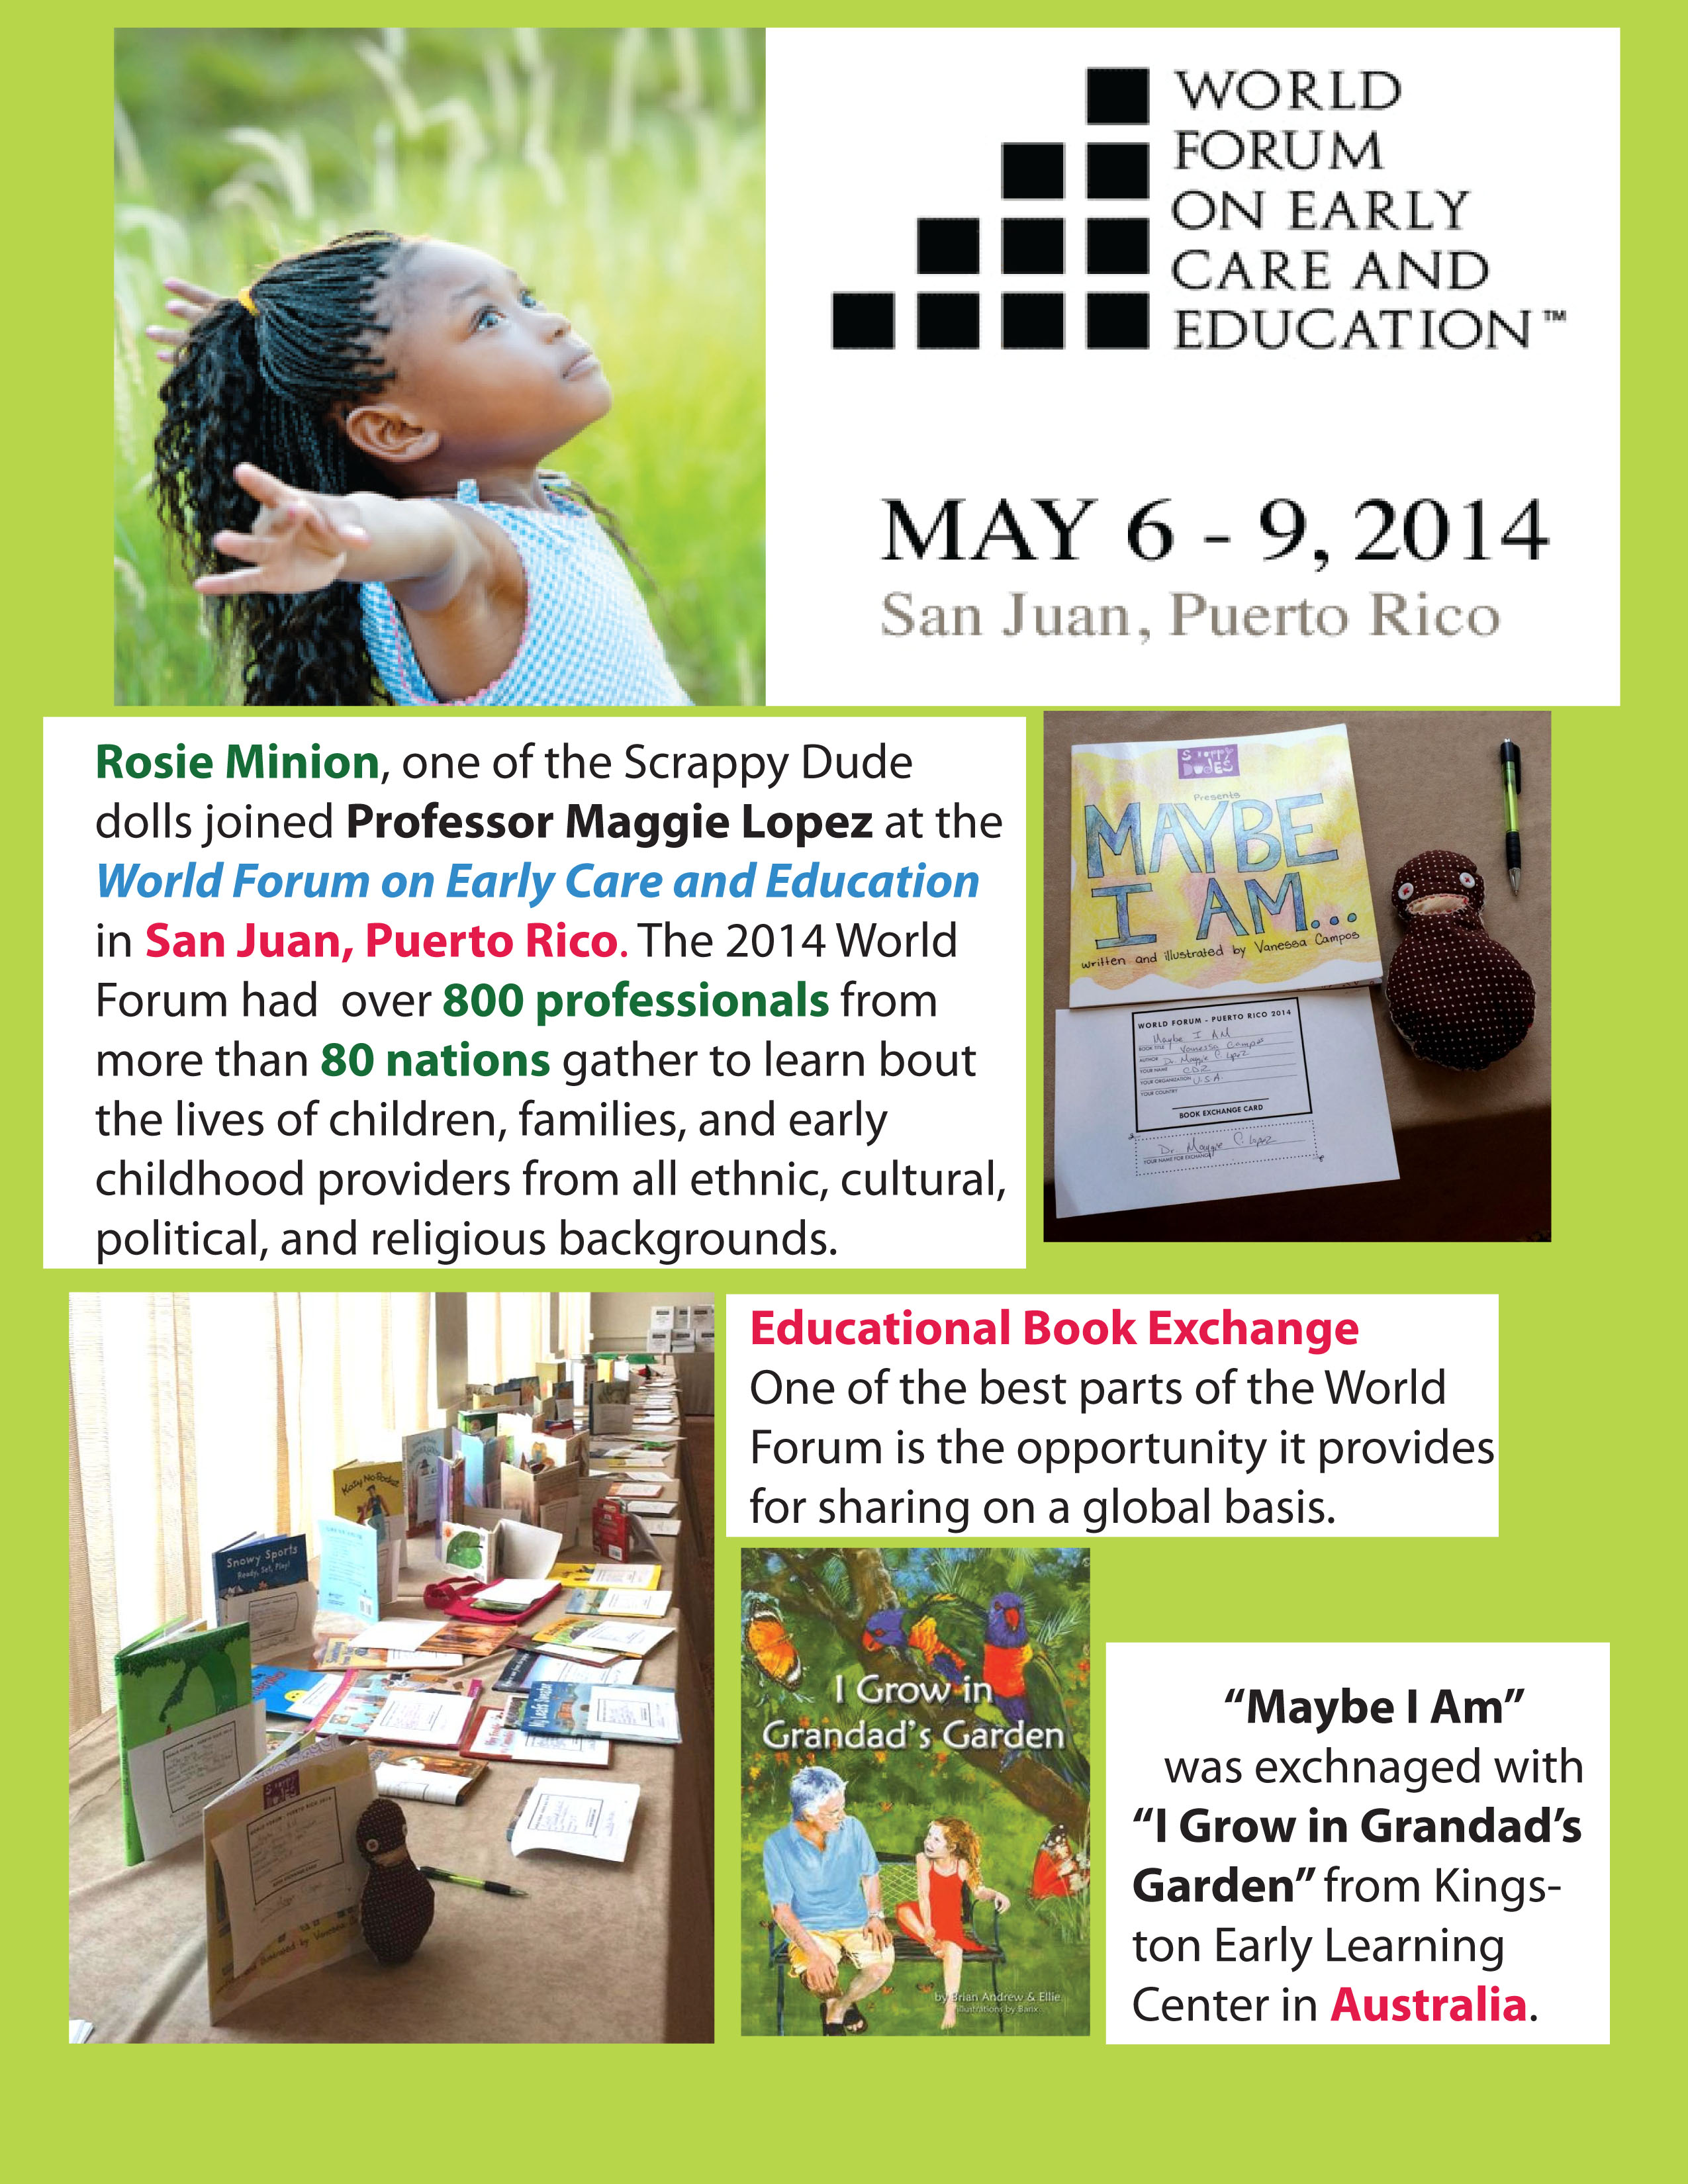 World Forum on Early Care & Education: Book Exchange